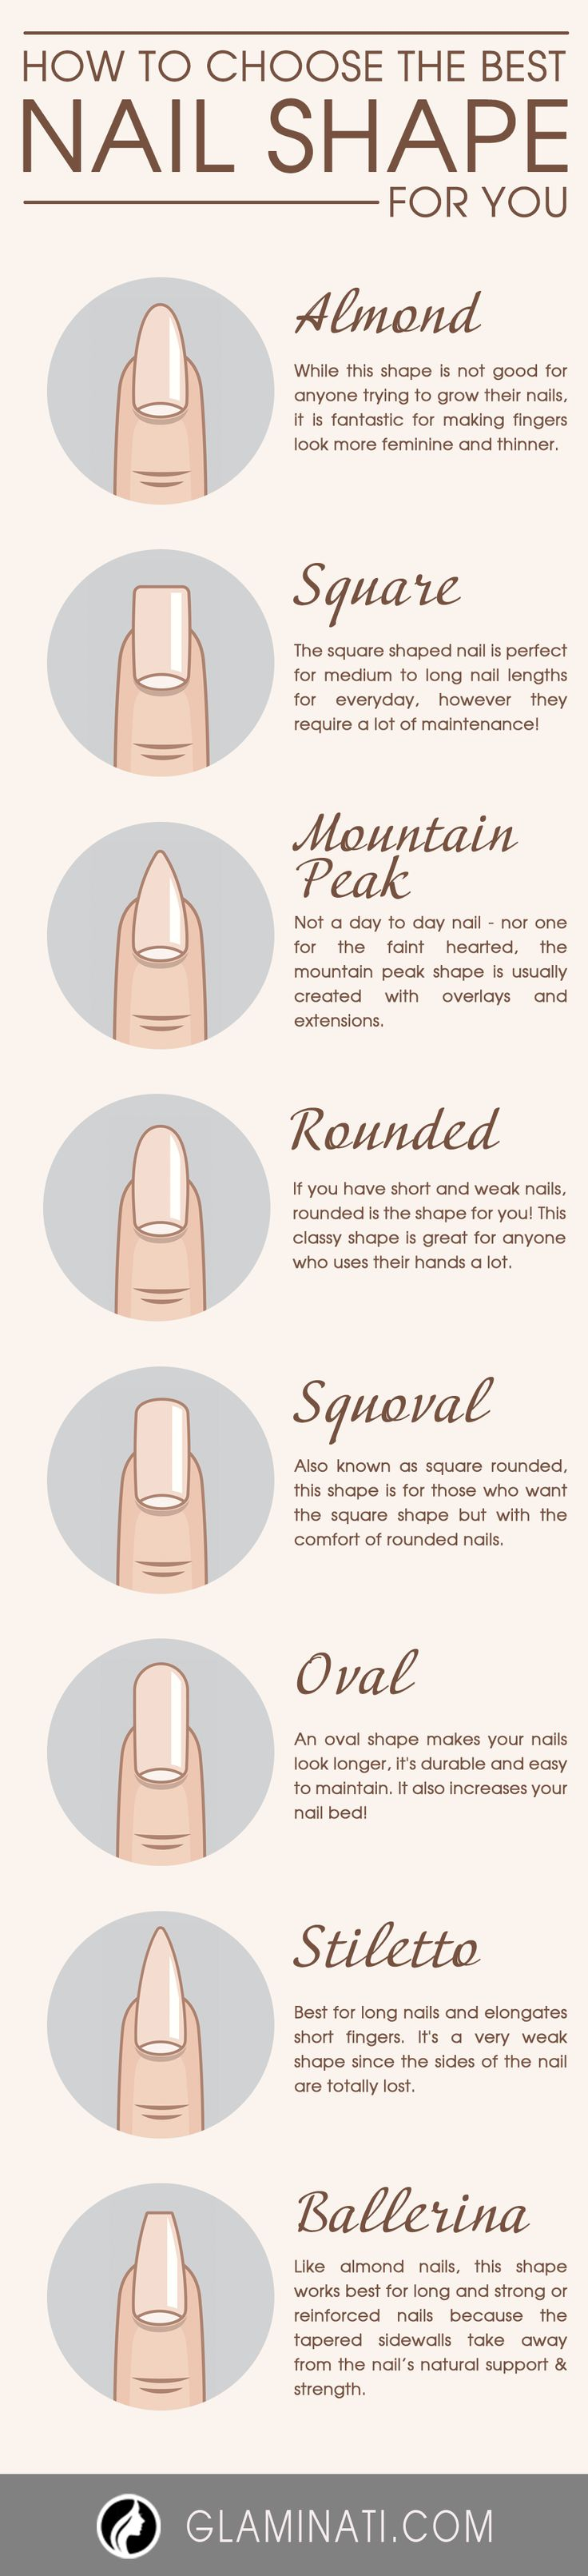 When the summer comes, women start adding more colors to their image, and summer nail designs become brighter, too. If you are interested in fashion, then you should know what your nails should look like this summer.